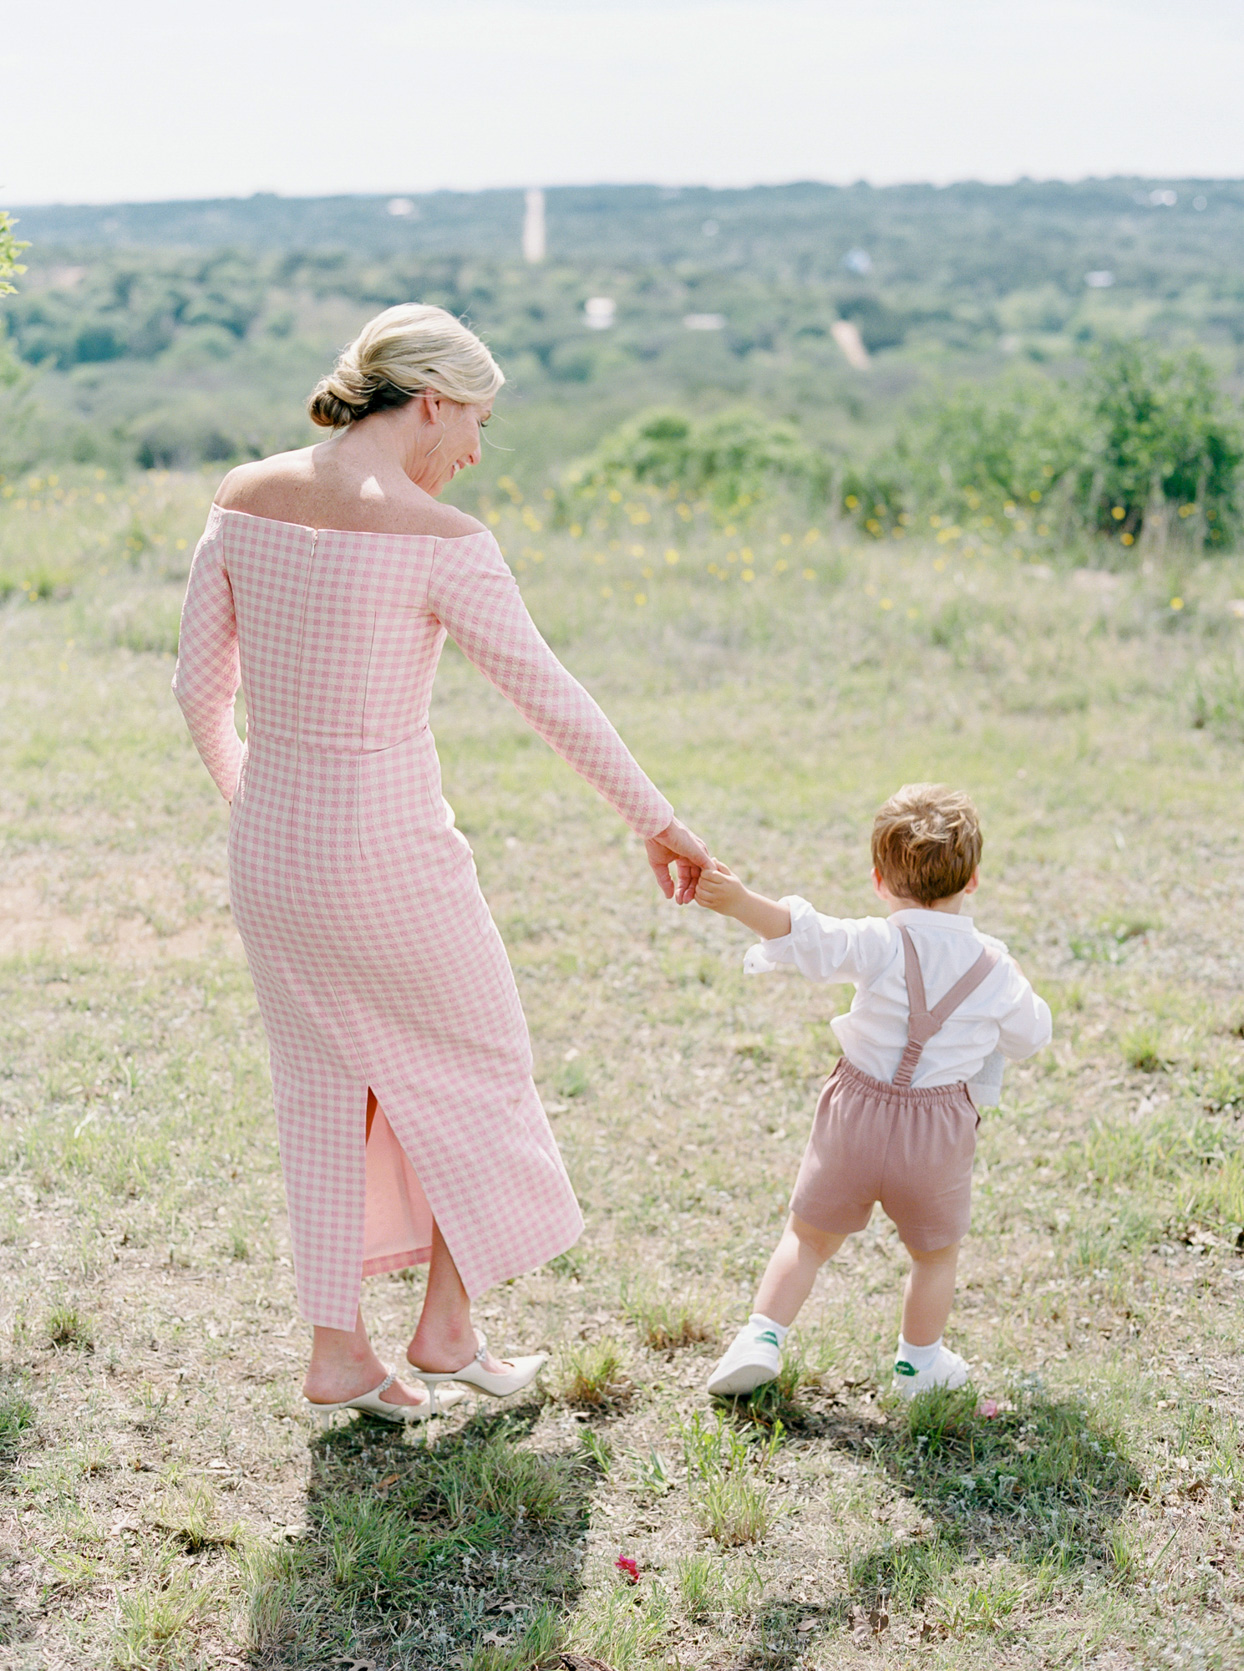 ring bearer wearing nude colored overalls and white shirt